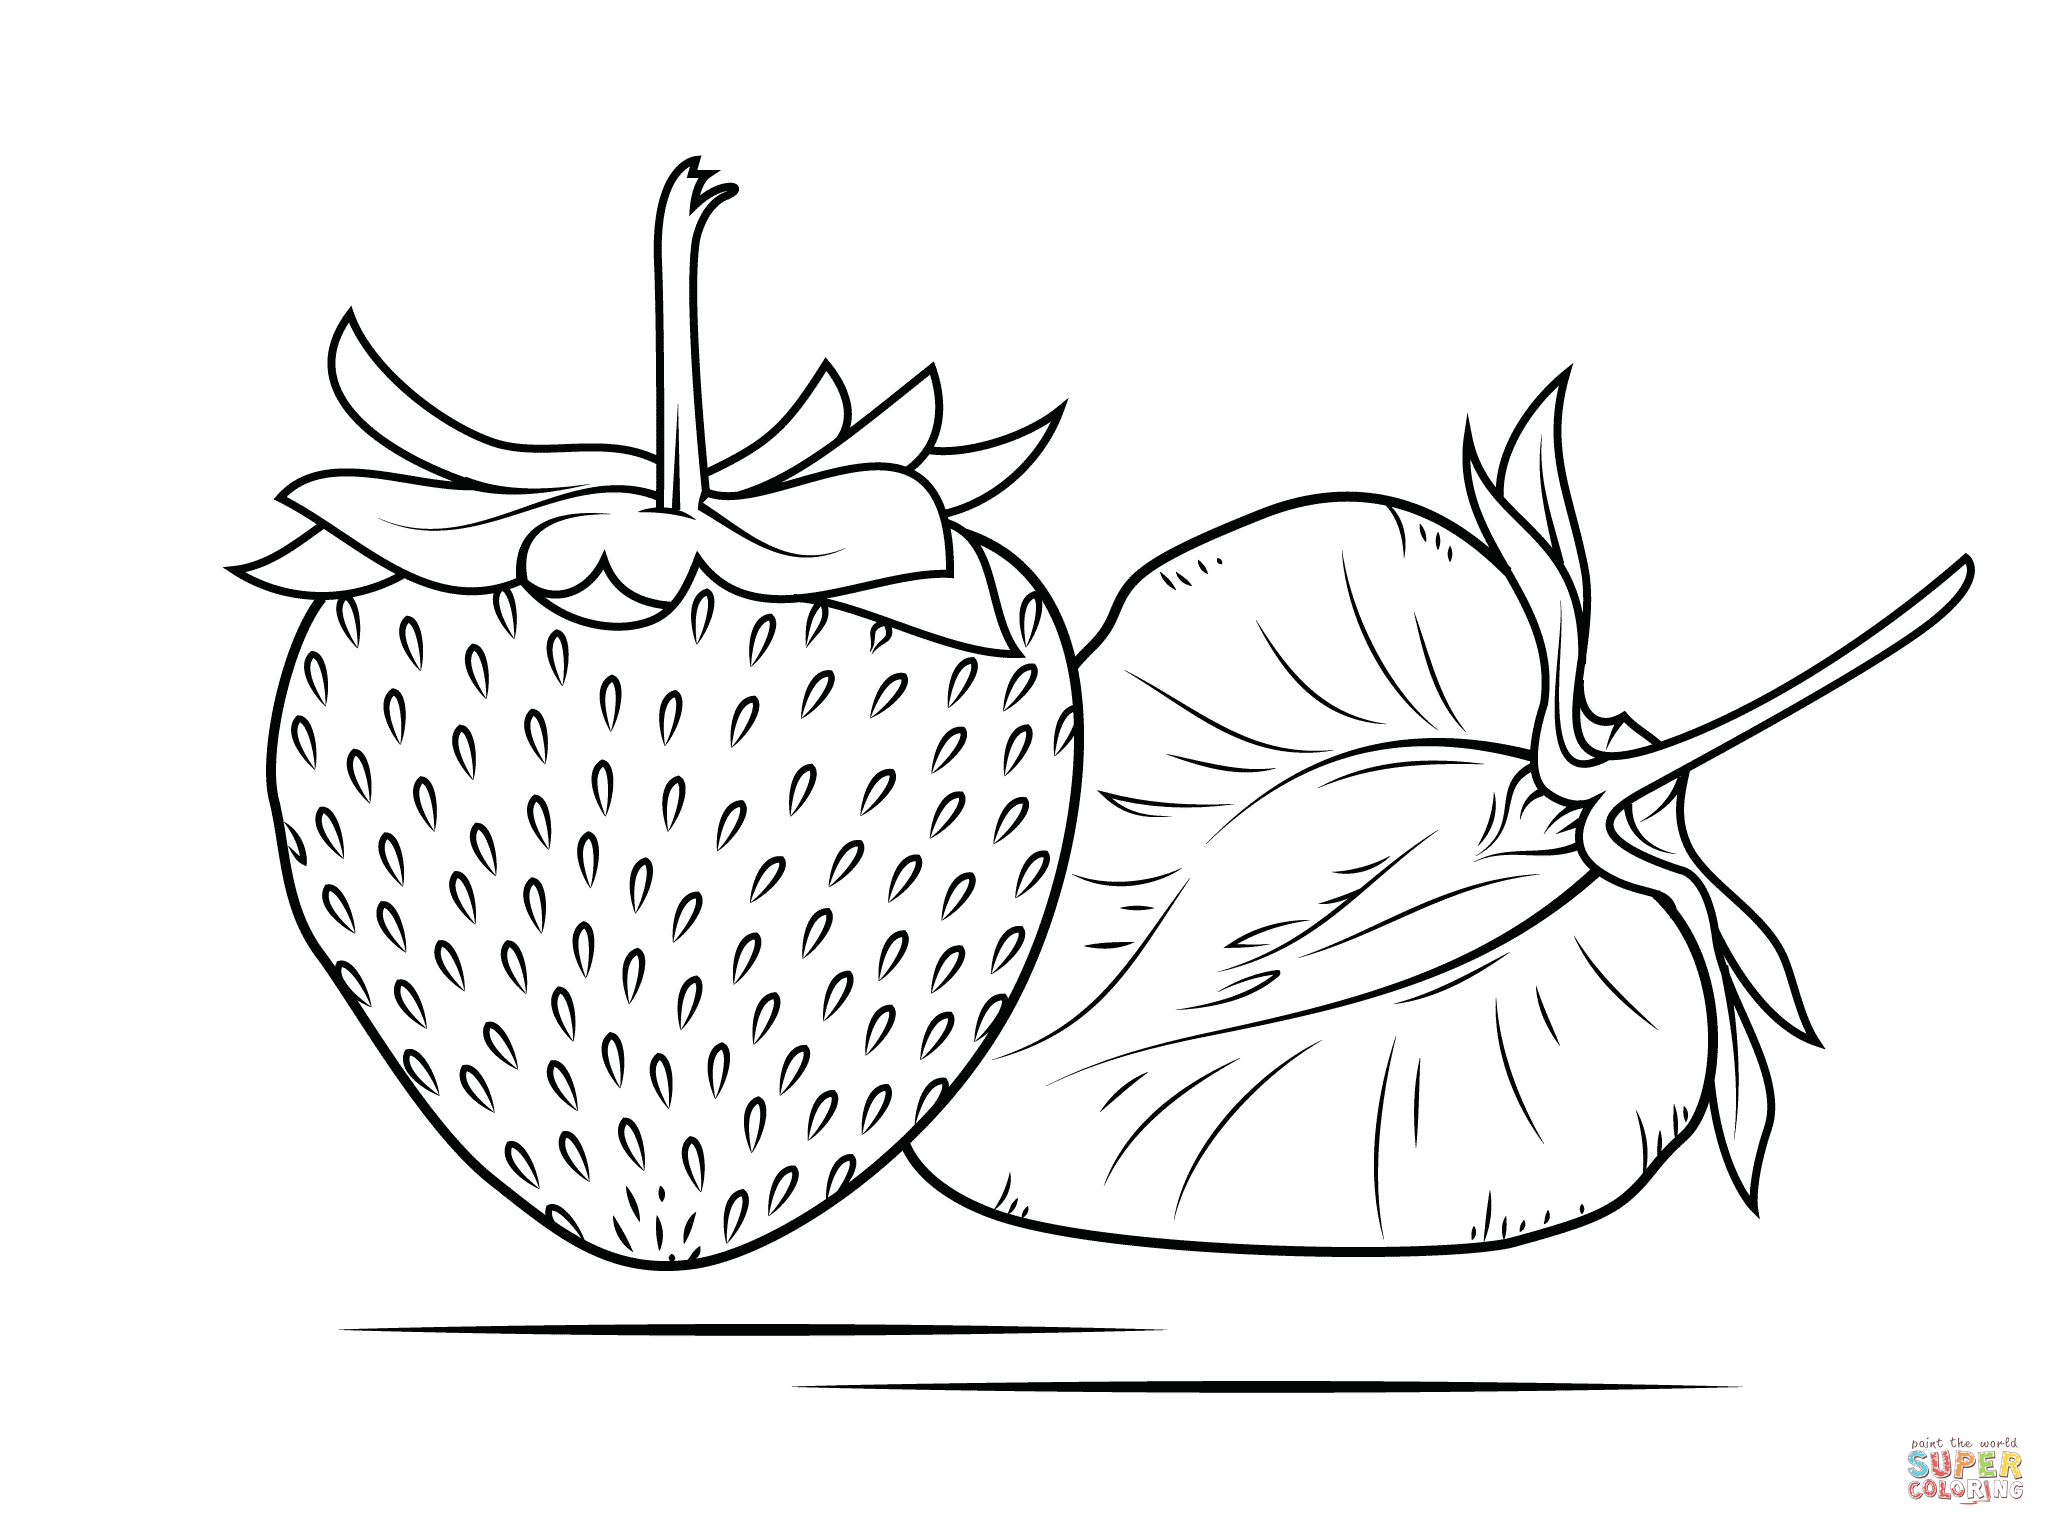 Strawberry coloring #7, Download drawings